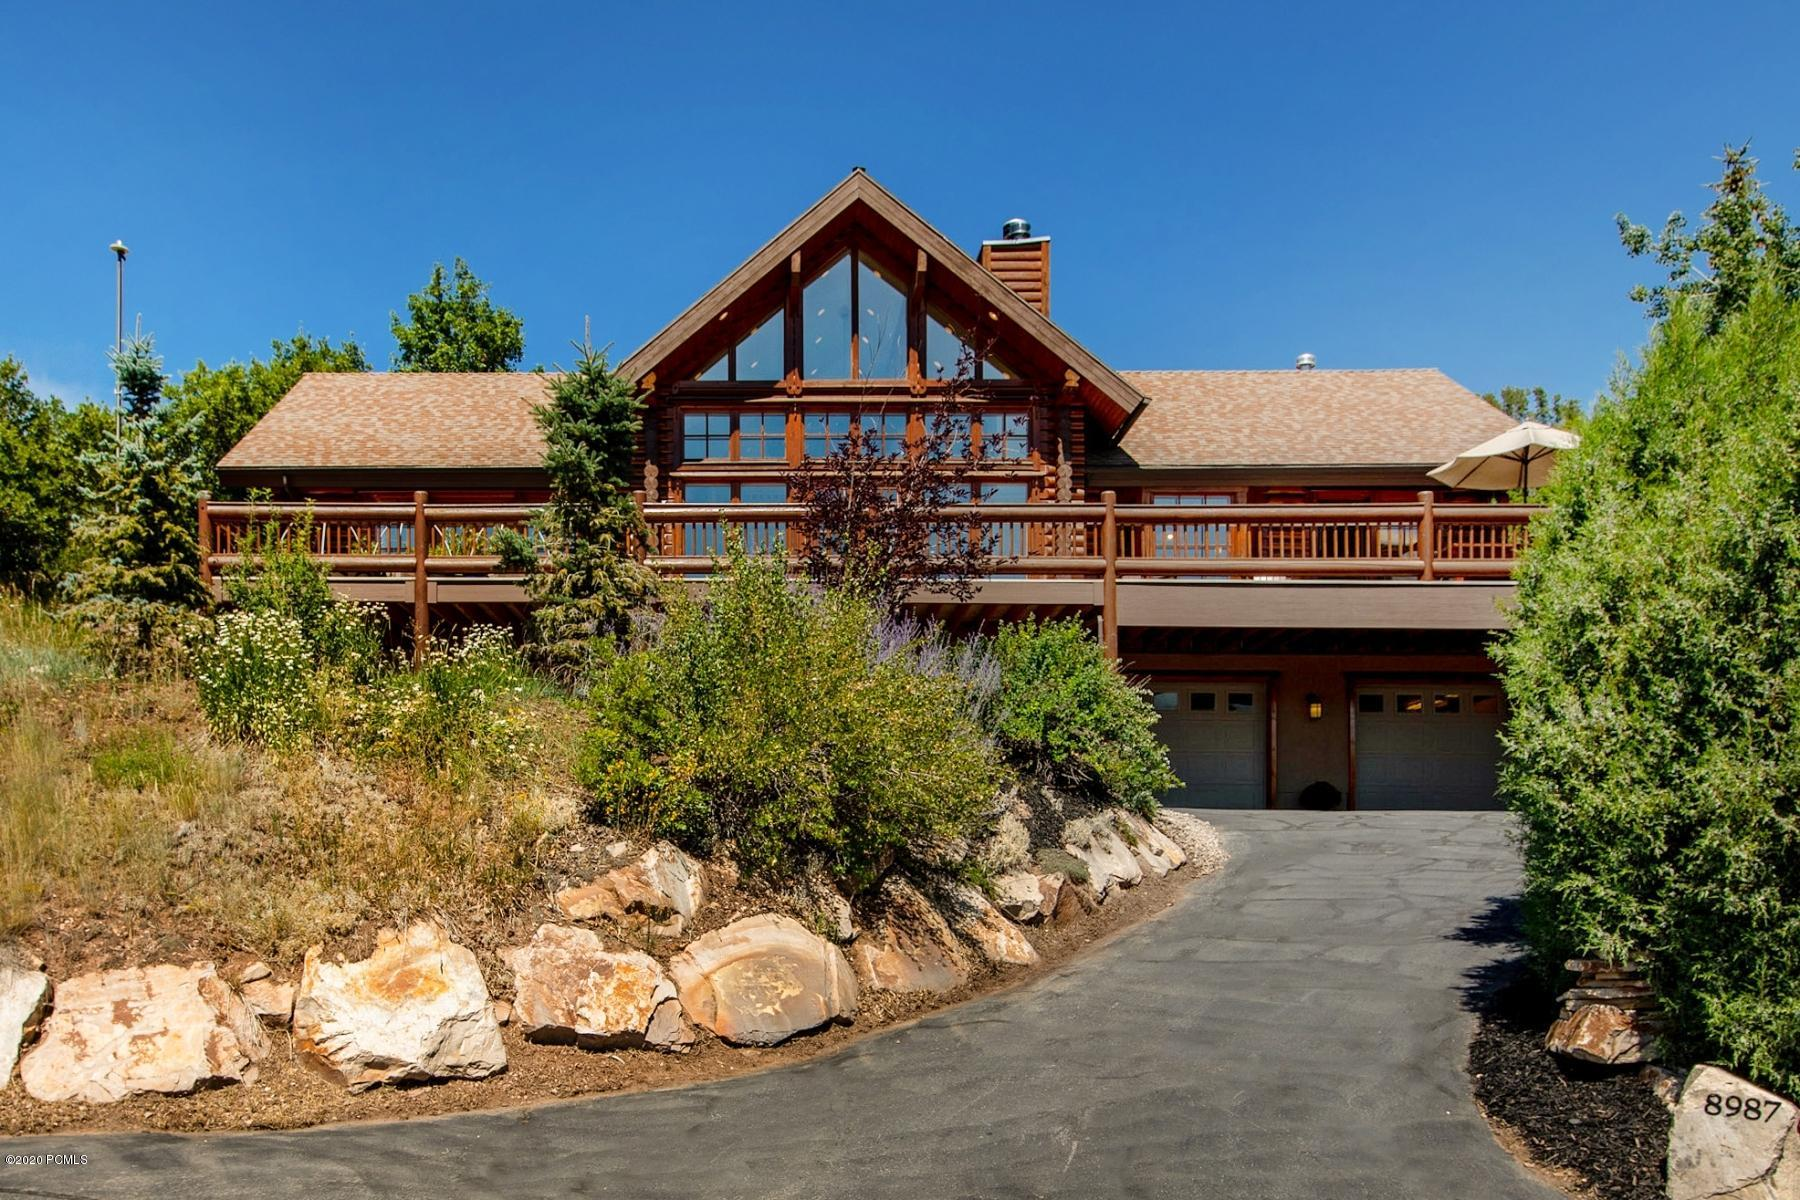 8987 Northcove Drive, Park City, Utah 84098, 4 Bedrooms Bedrooms, ,3 BathroomsBathrooms,Single Family,For Sale,Northcove,12003060